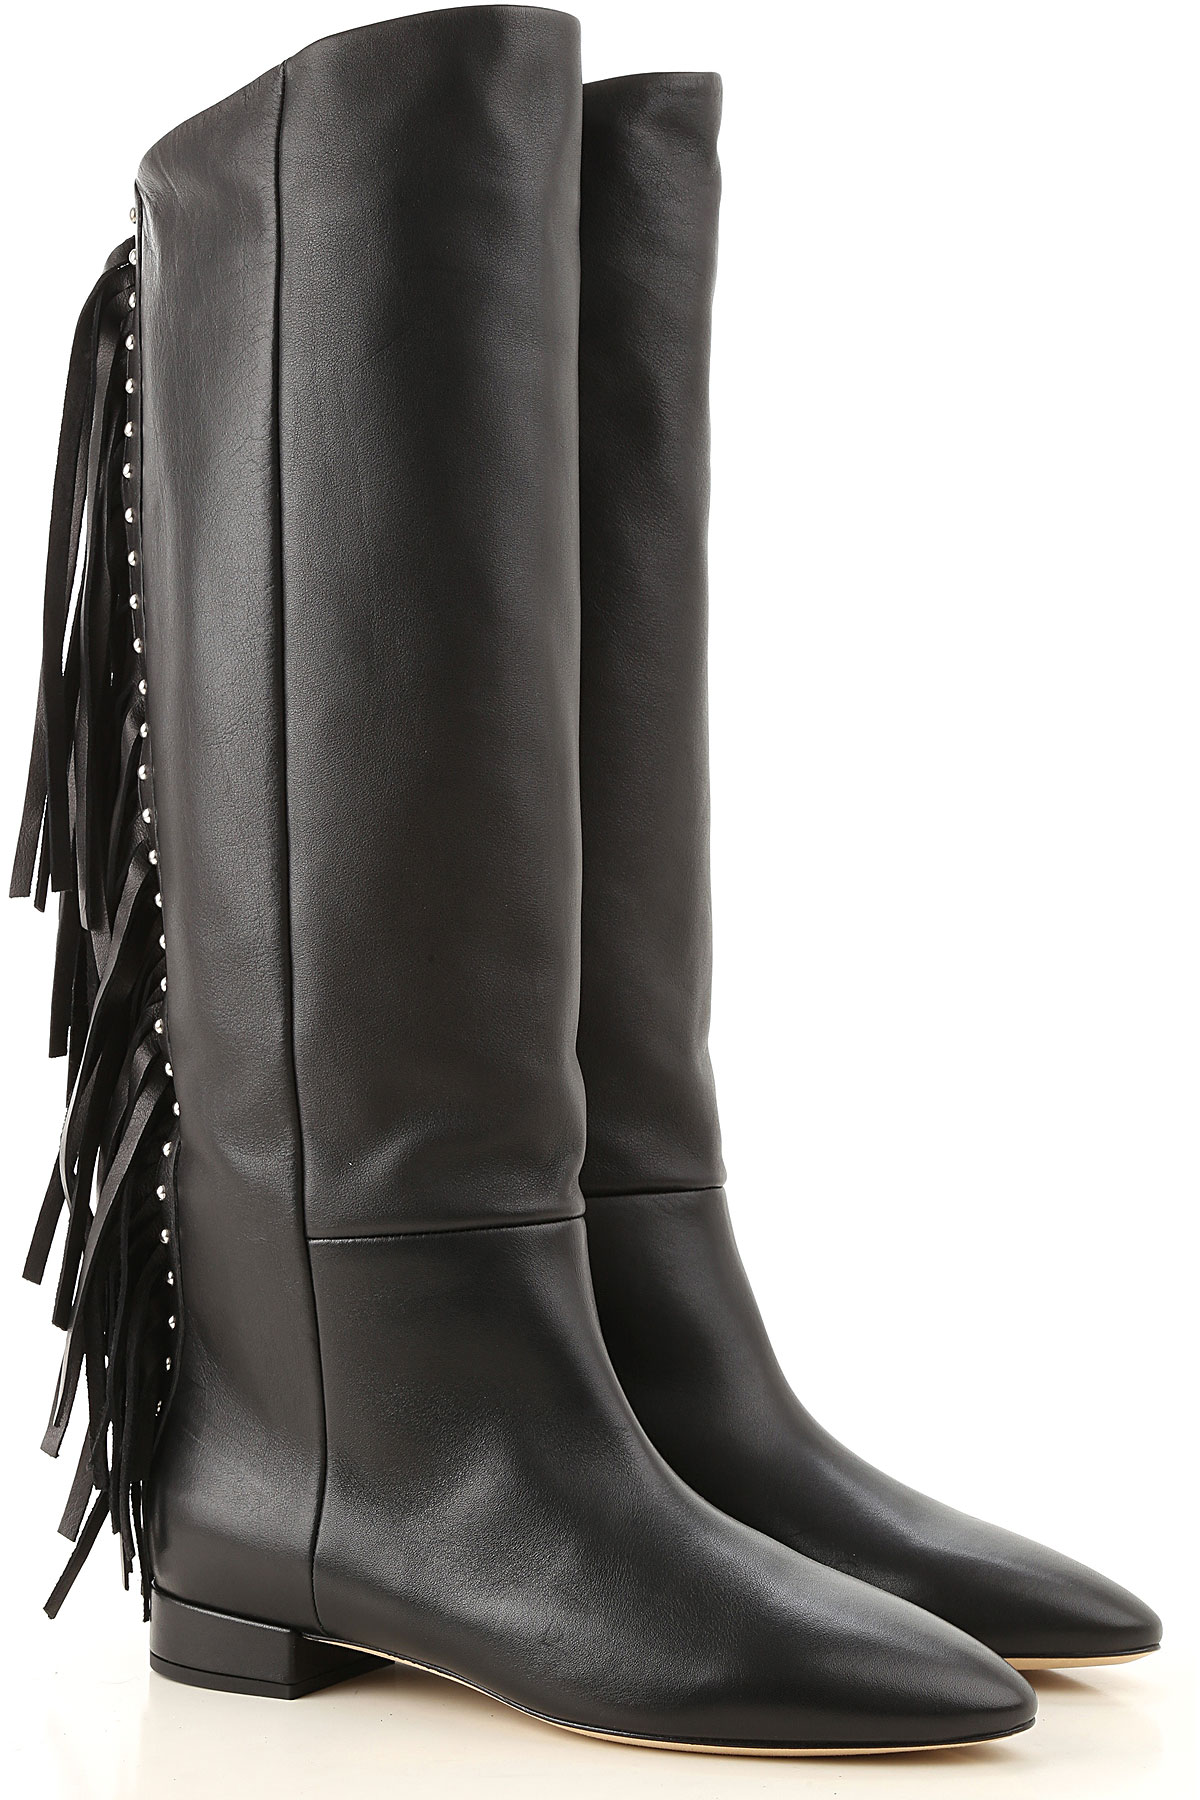 Yves Saint Laurent Boots for Women, Booties On Sale, Black, Leather, 2019, 7 8